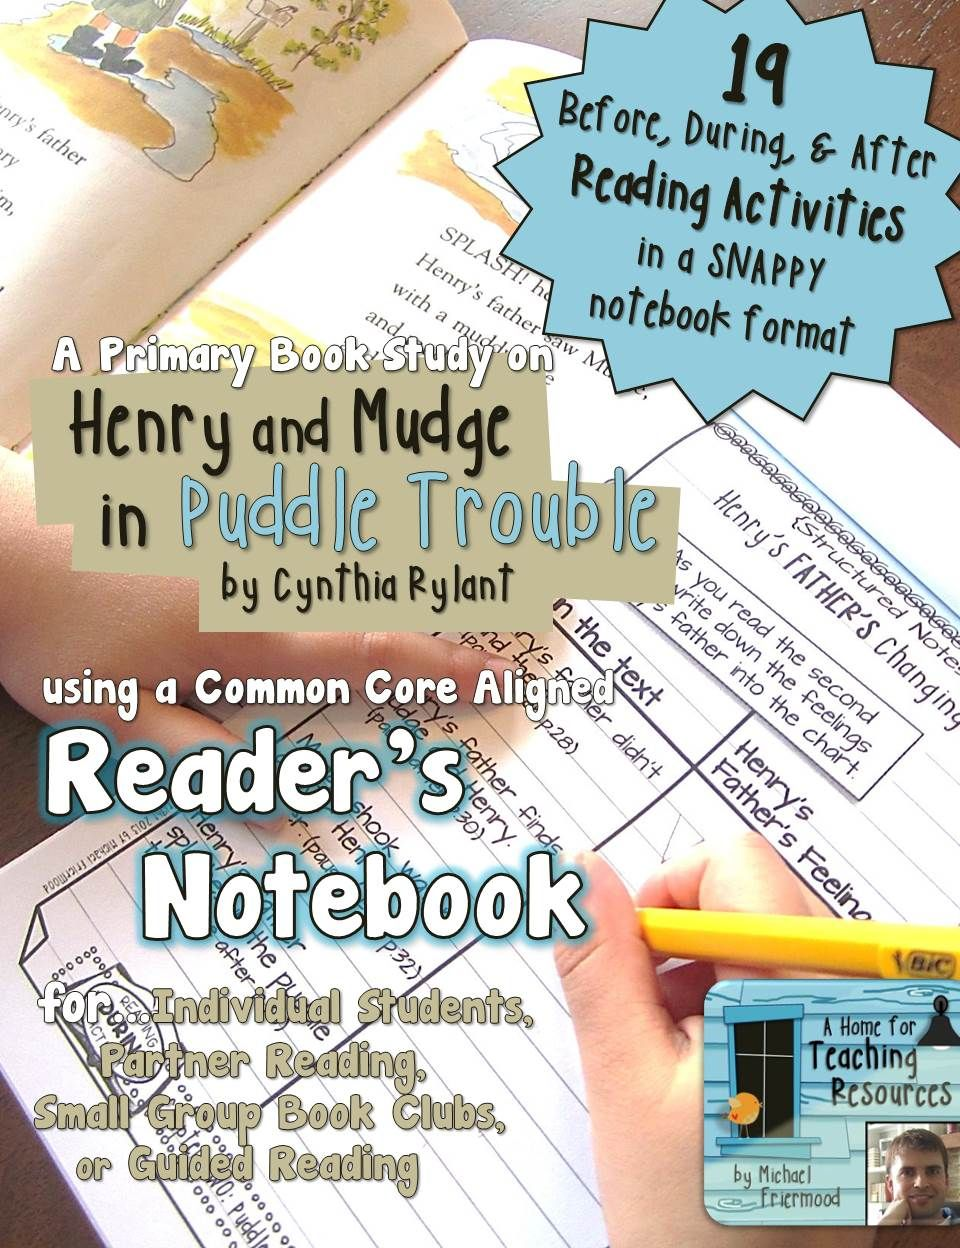 Henry and Mudge in Puddle Trouble {A Book Study} | Pinterest